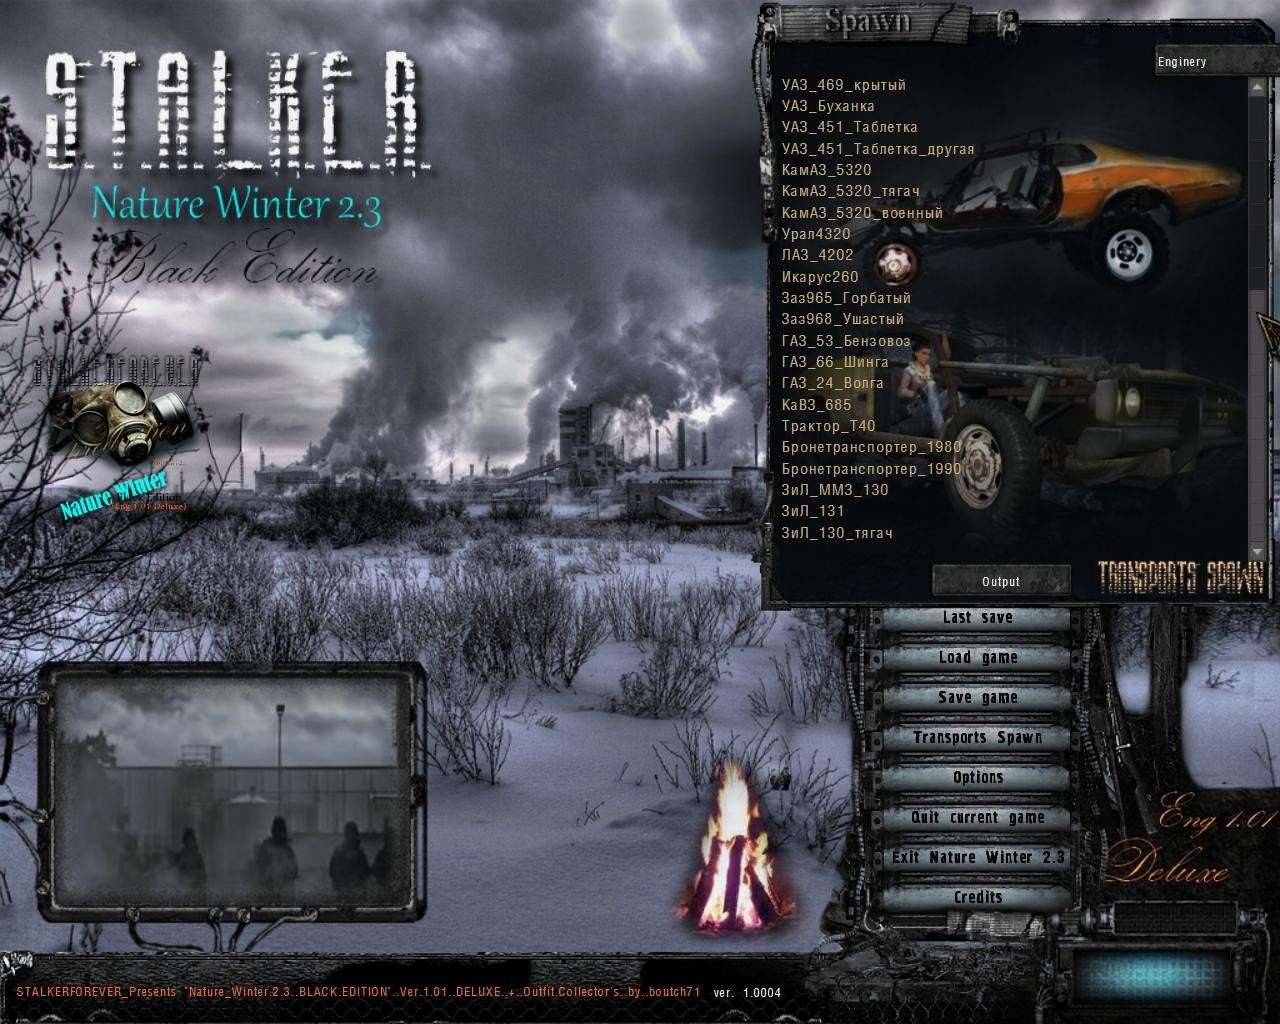 Nature Winter 2.3 Black Edition (eng 1.01 Deluxe) Images Gallery! Serie:1# Ss_bo100